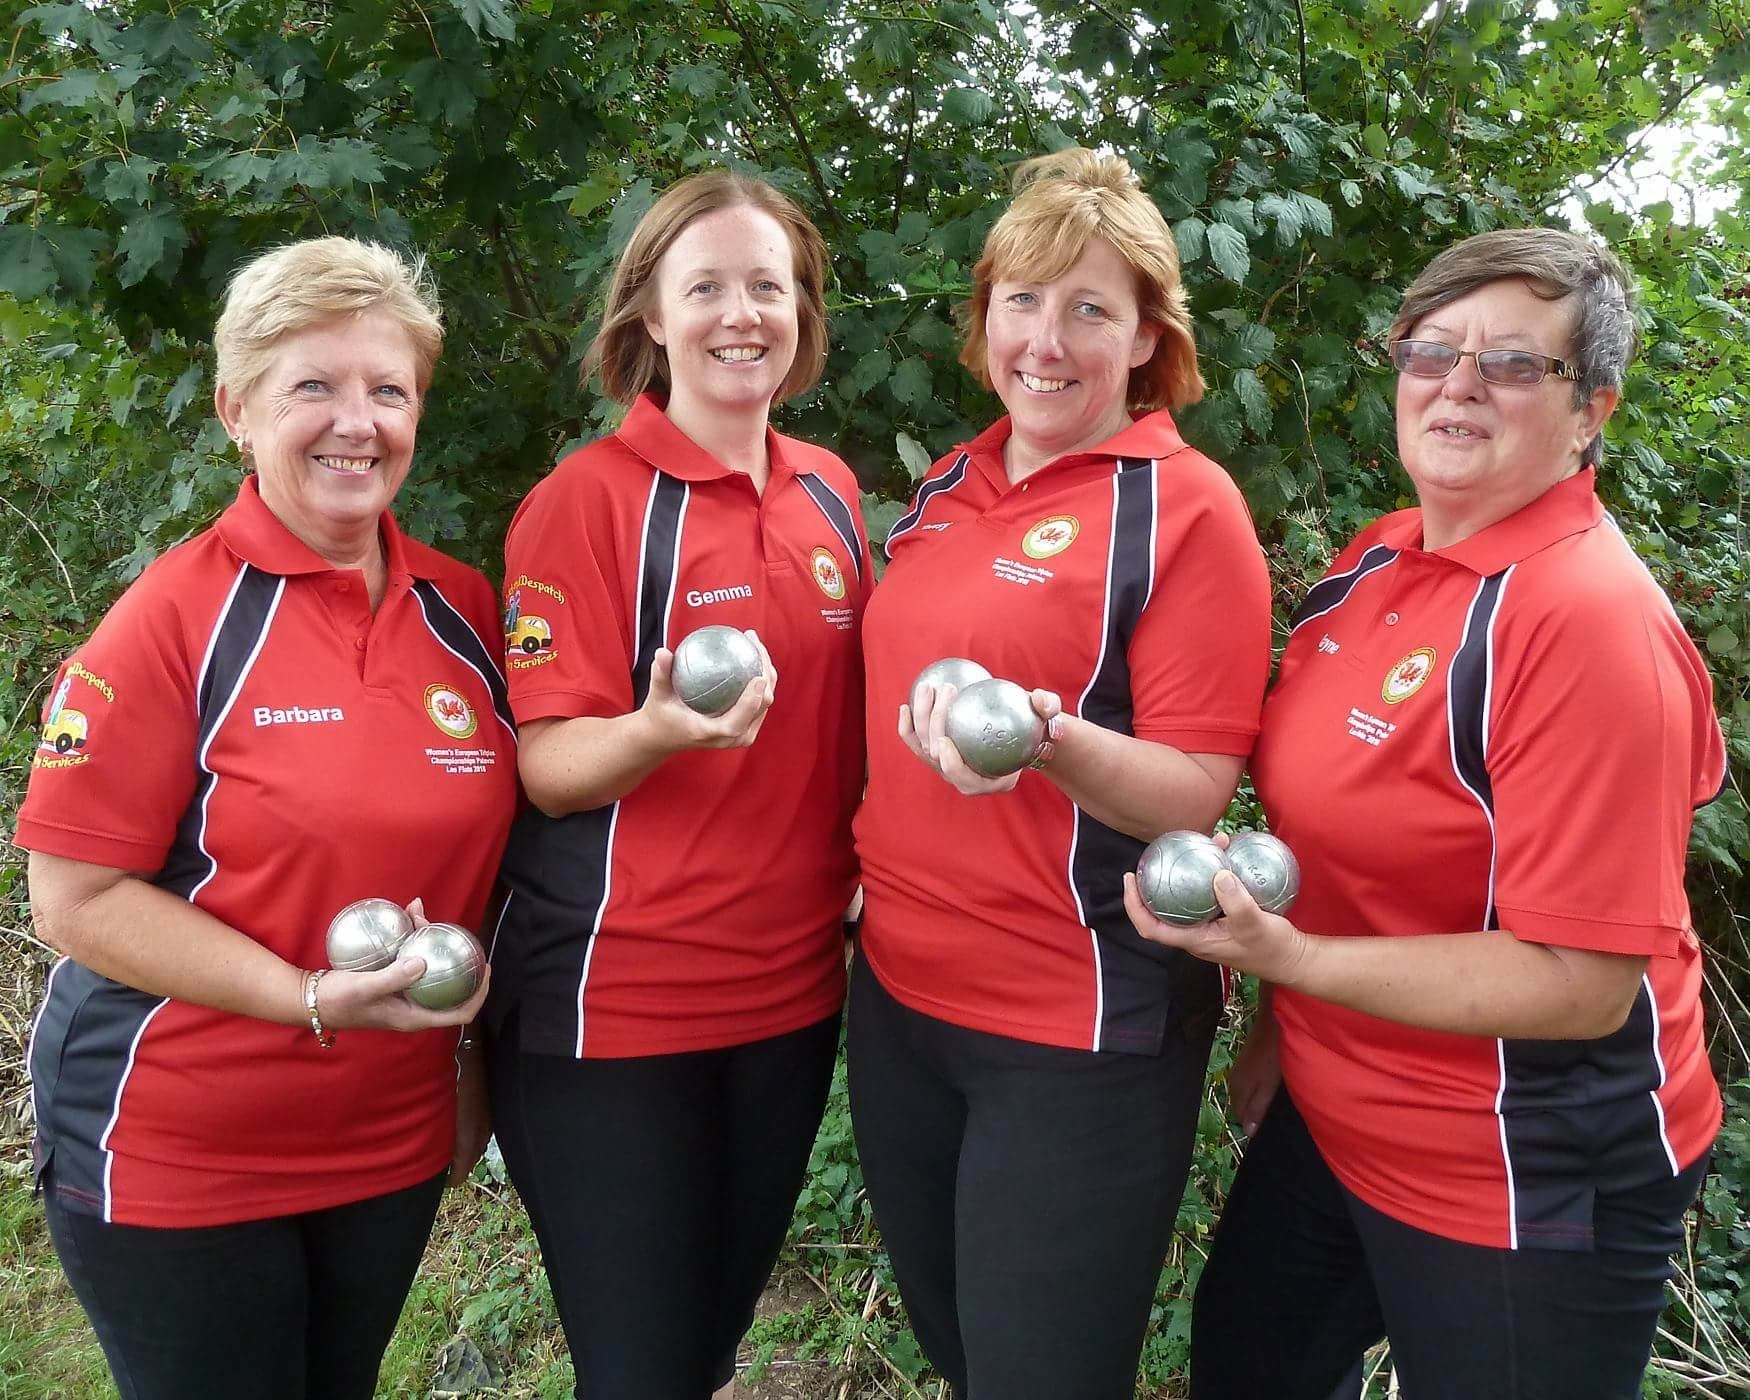 Wales Women's Triples Squad 2018. Barbara Vaughan, Gemma Foster, Tansy Mayfield and Jayne Dunn